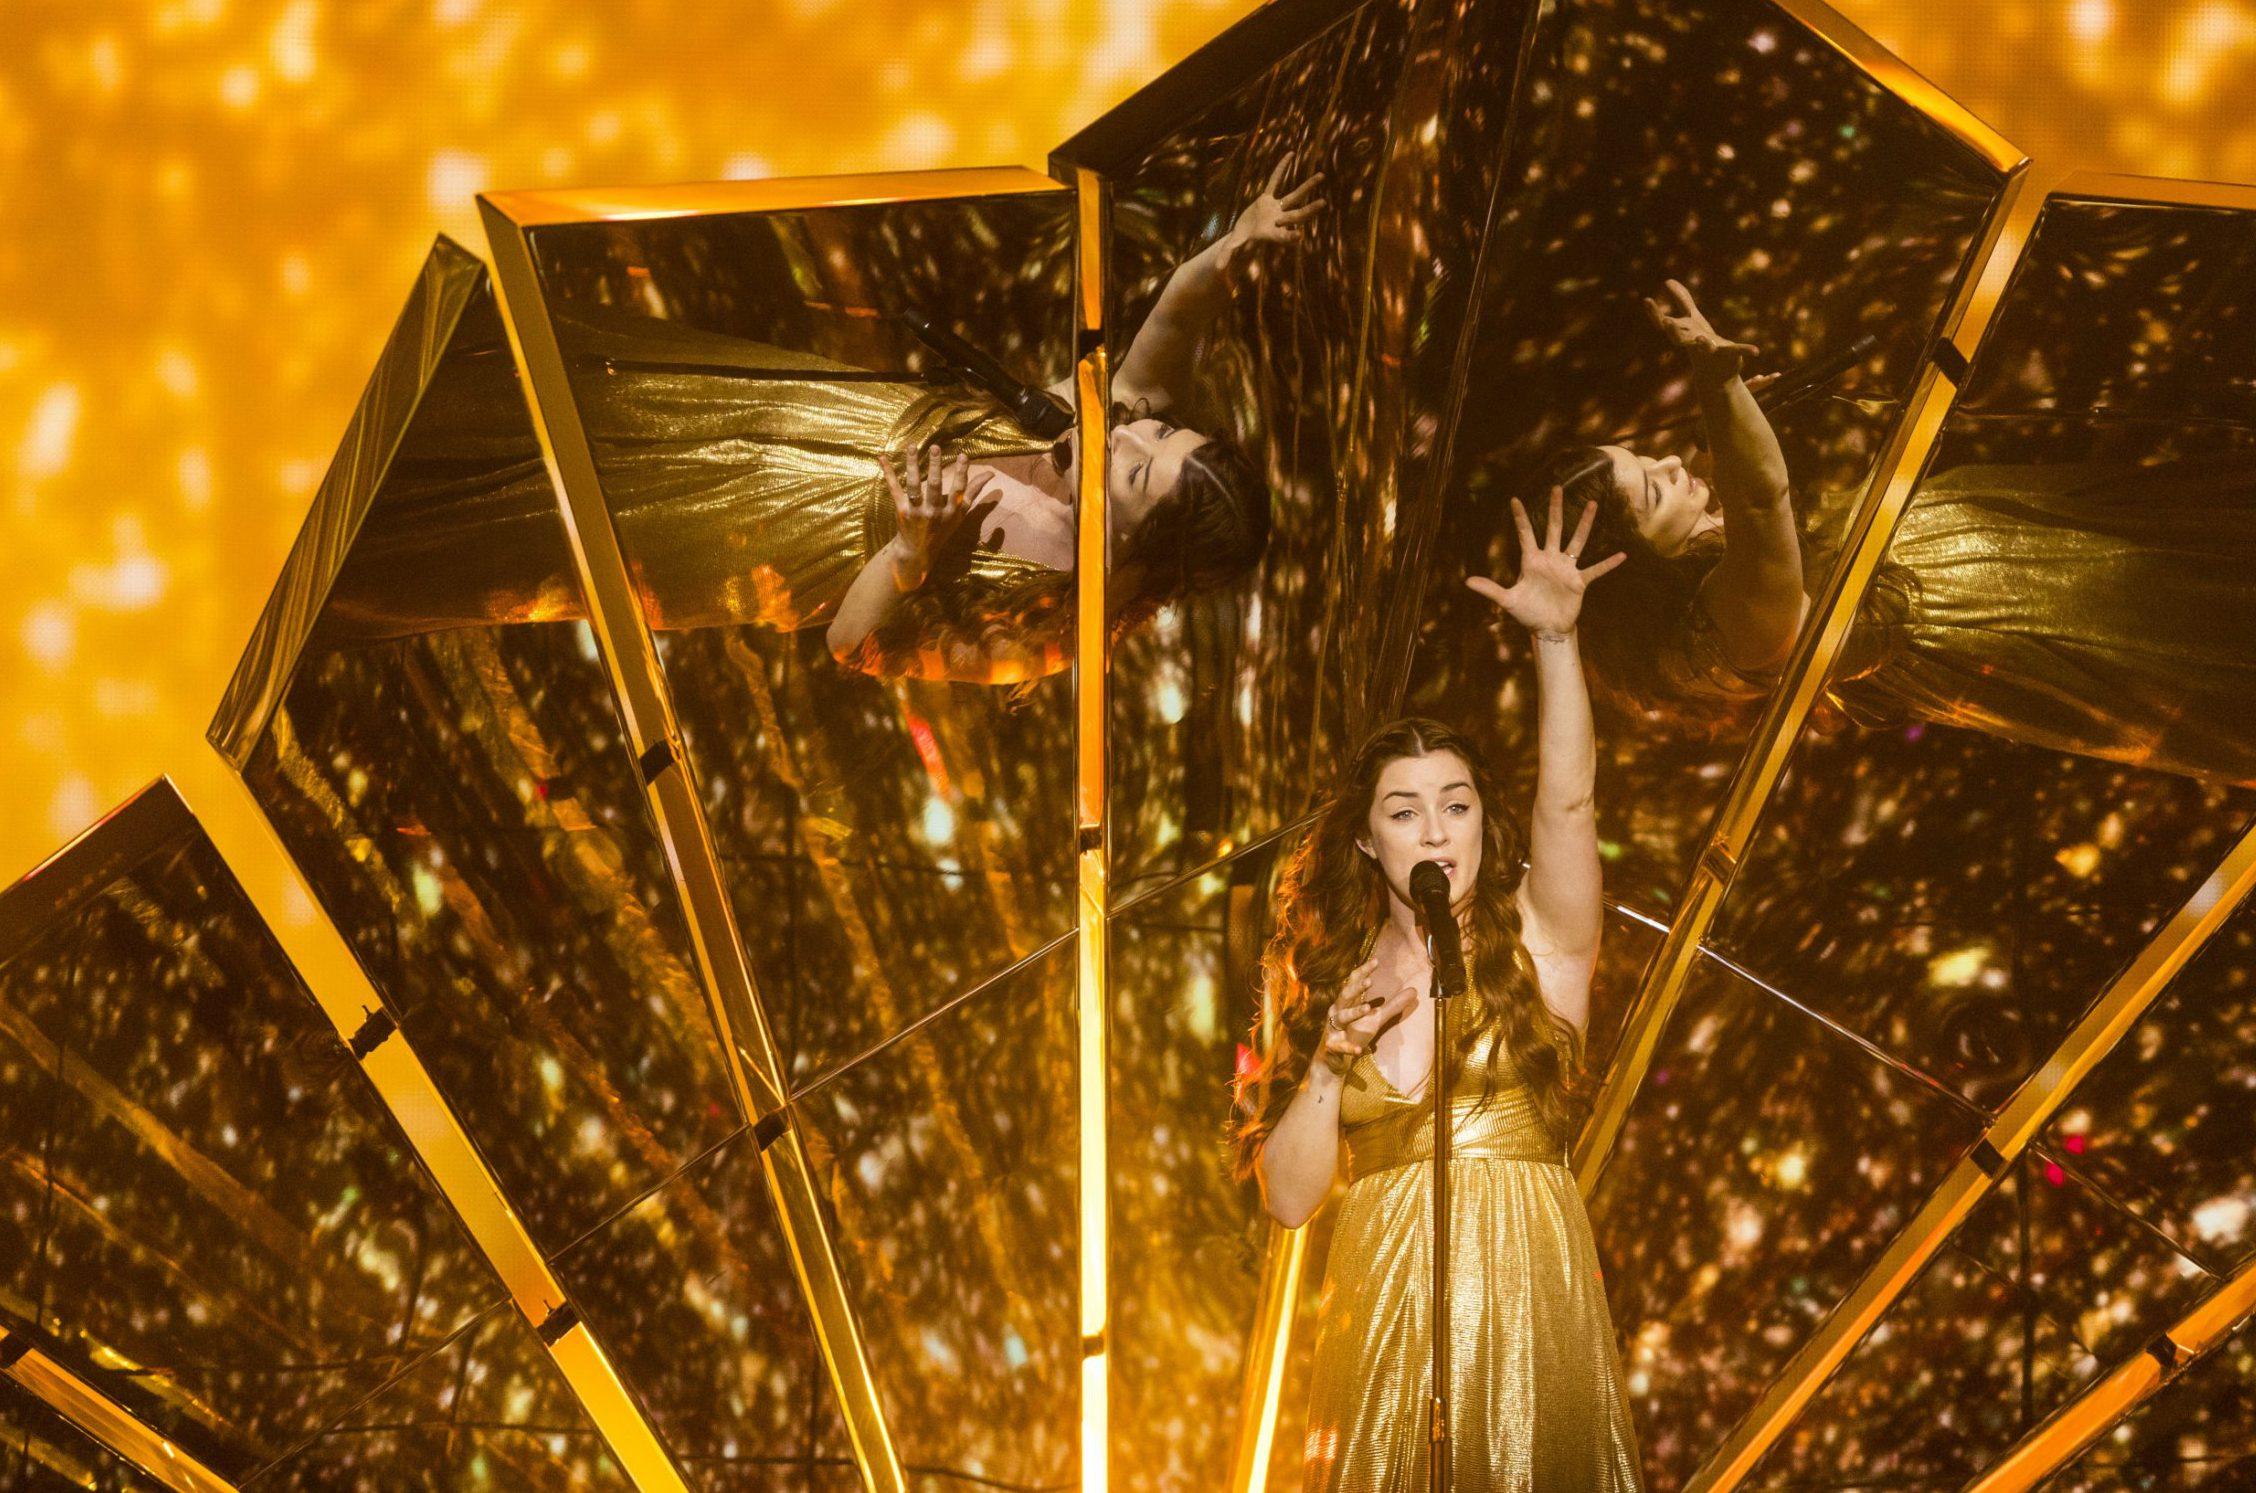 The United Kingdom sunk by the Eurovision Televote yet again